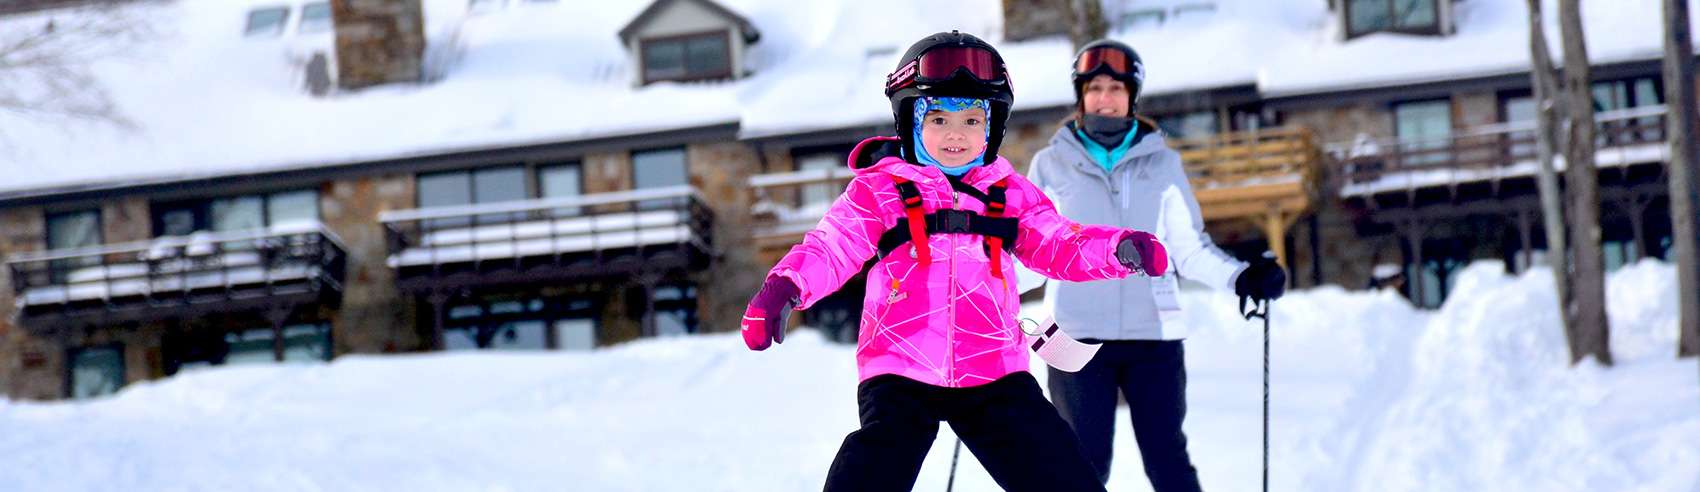 little-girl-skiiing-with-mom-in-bgd